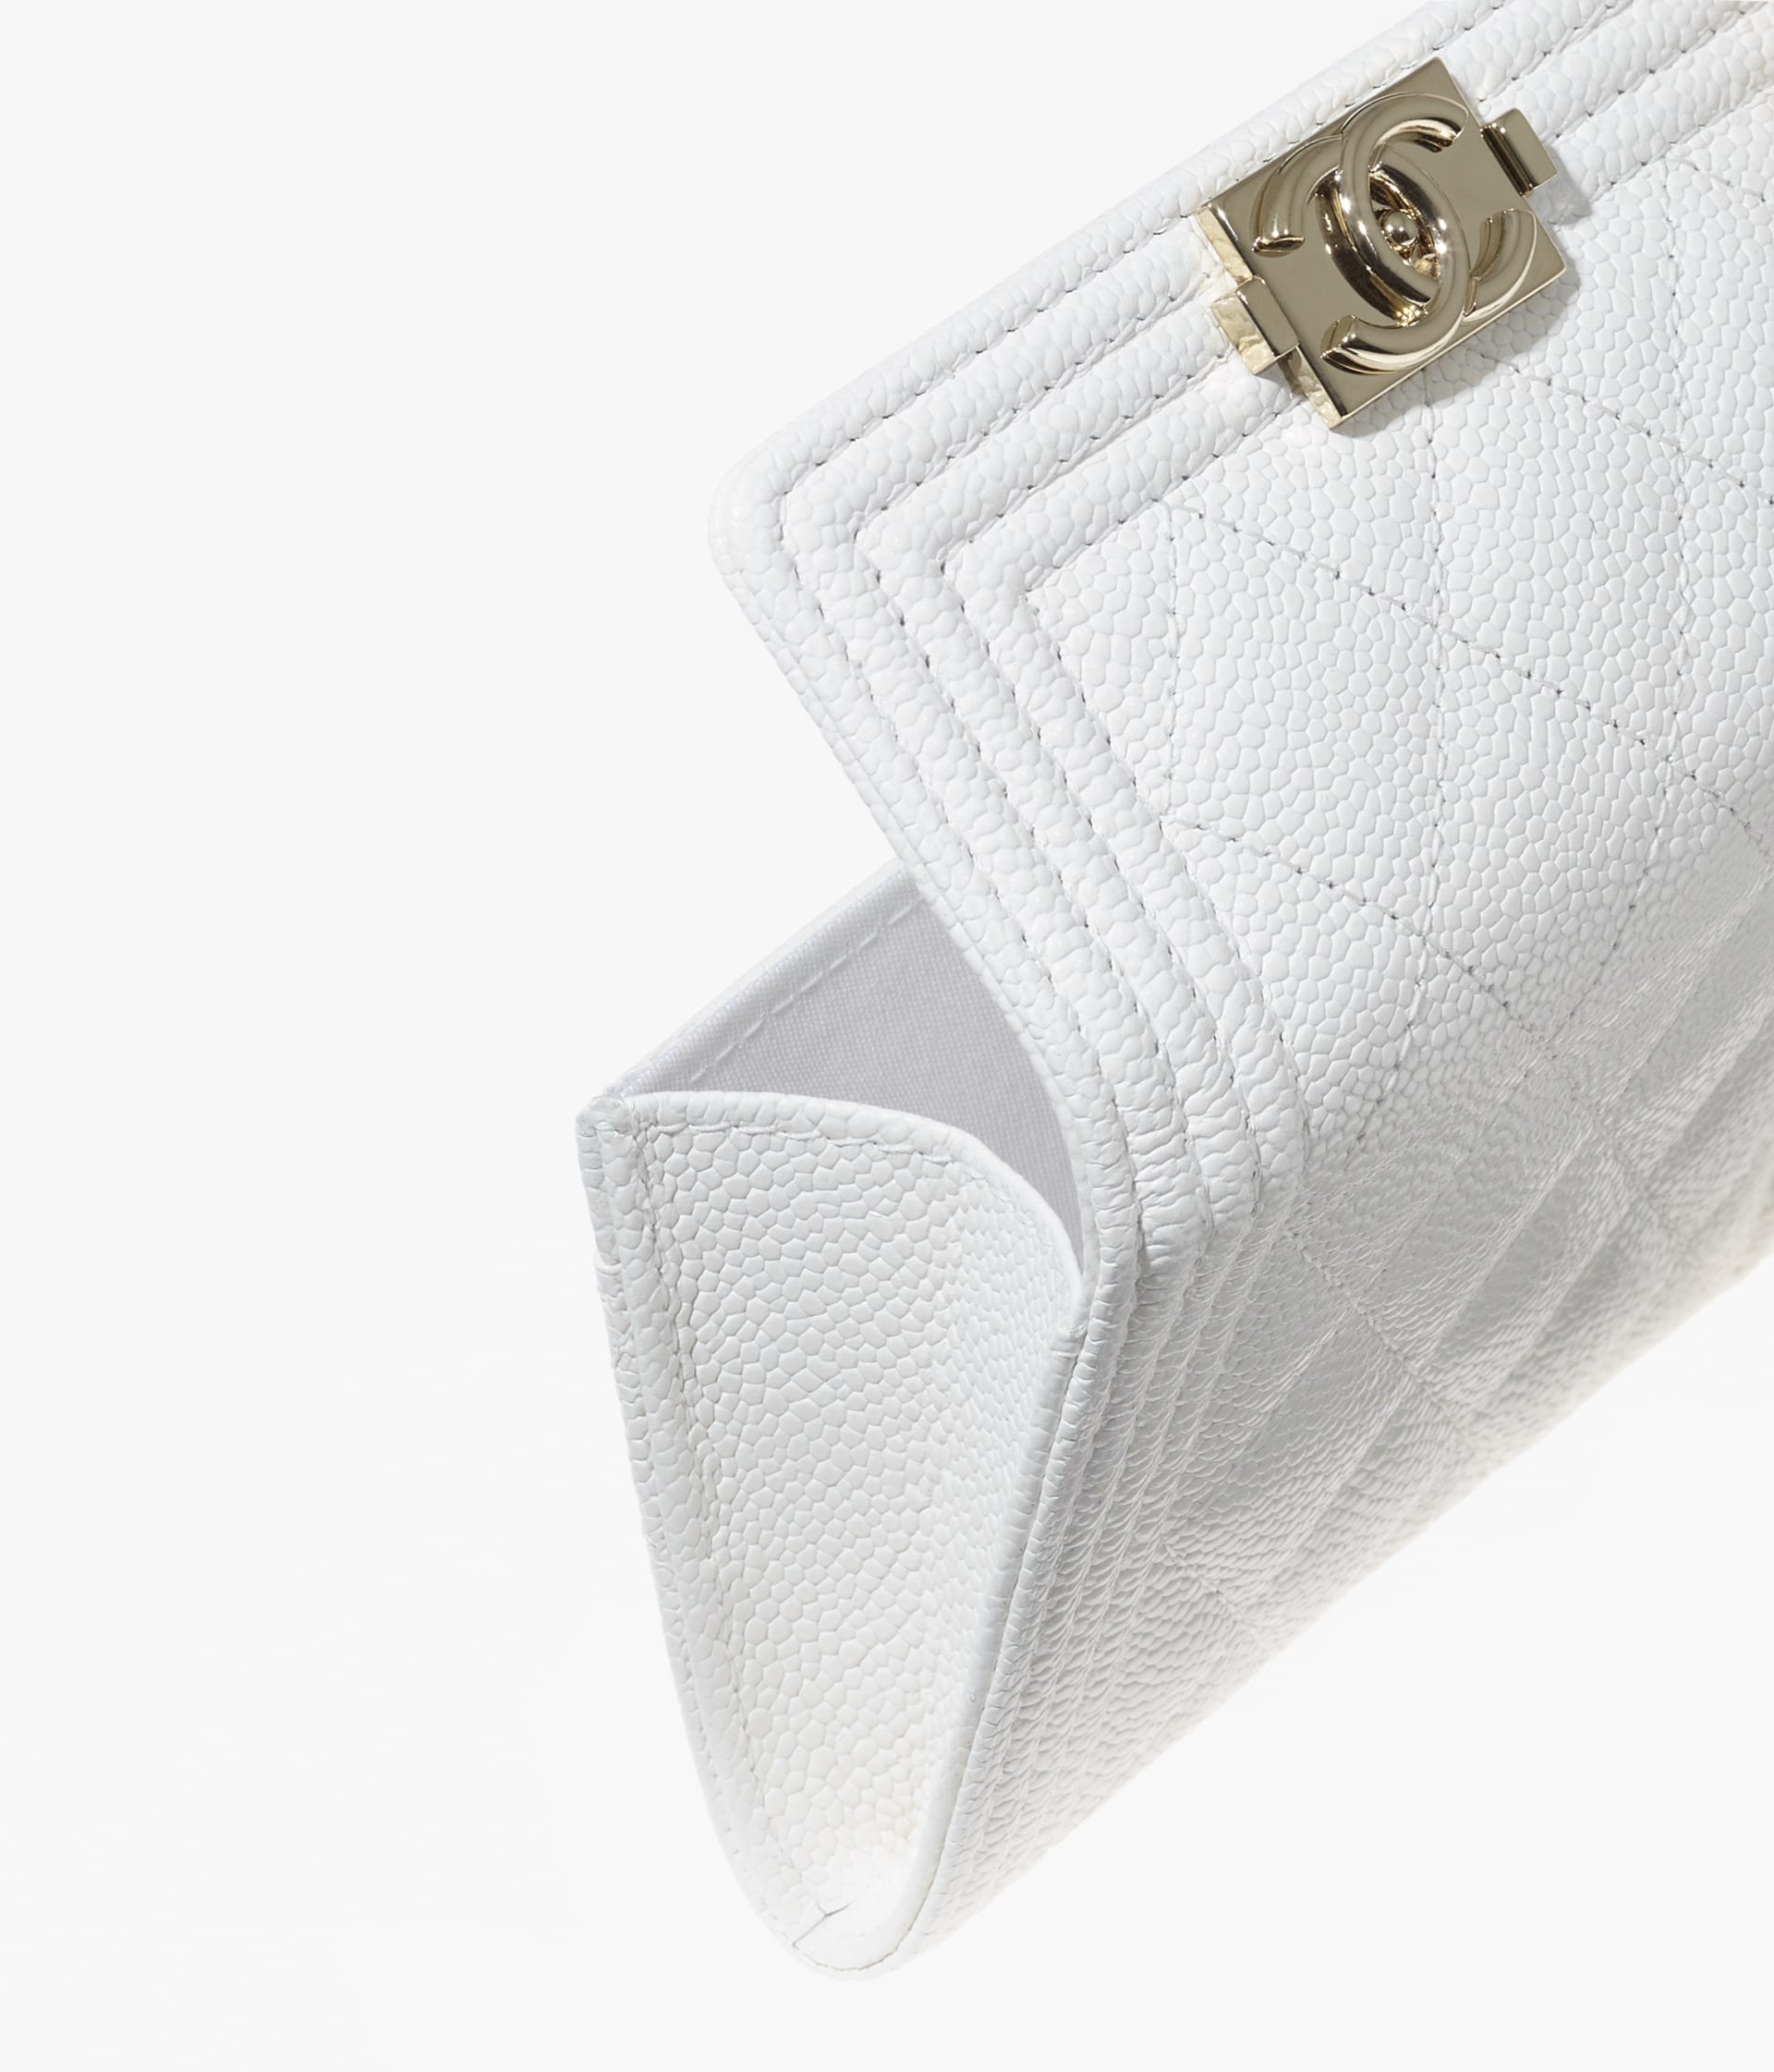 image 2 - BOY CHANEL Flap Card Holder - Grained Calfskin & Gold-Tone Metal - White